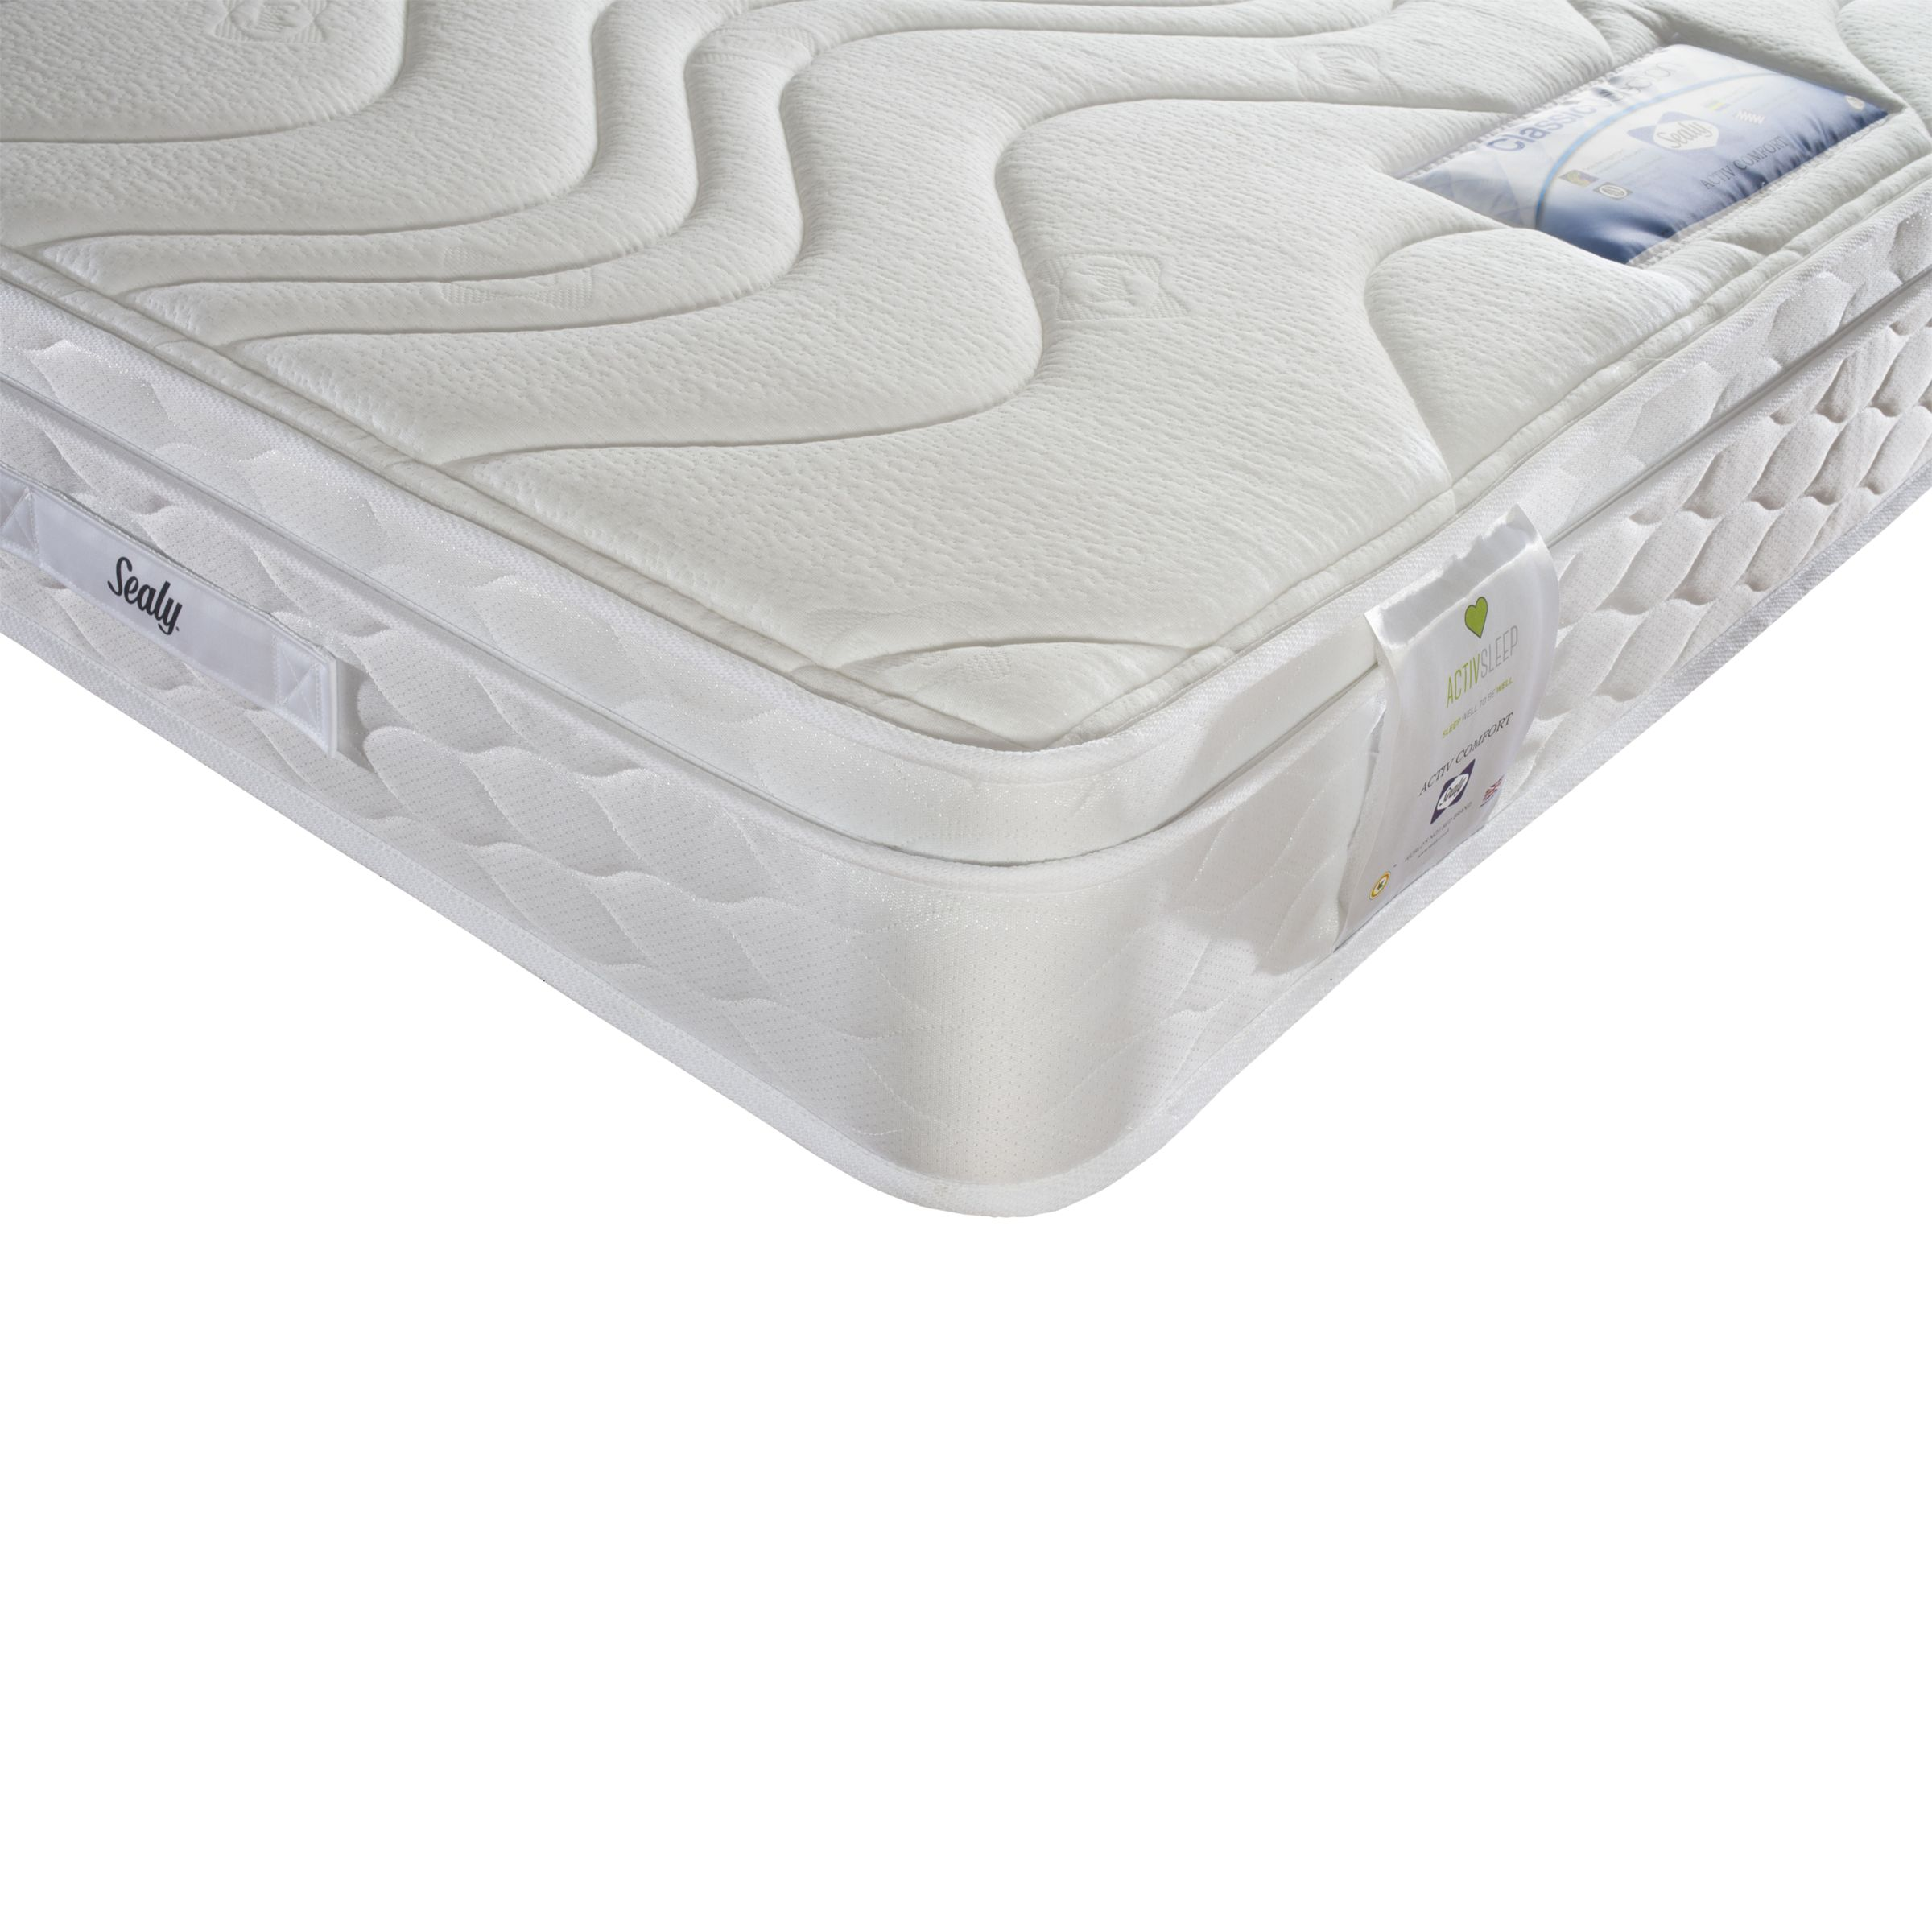 Sealy Sealy Activsleep Comfort Mattress, Medium, Super King Size